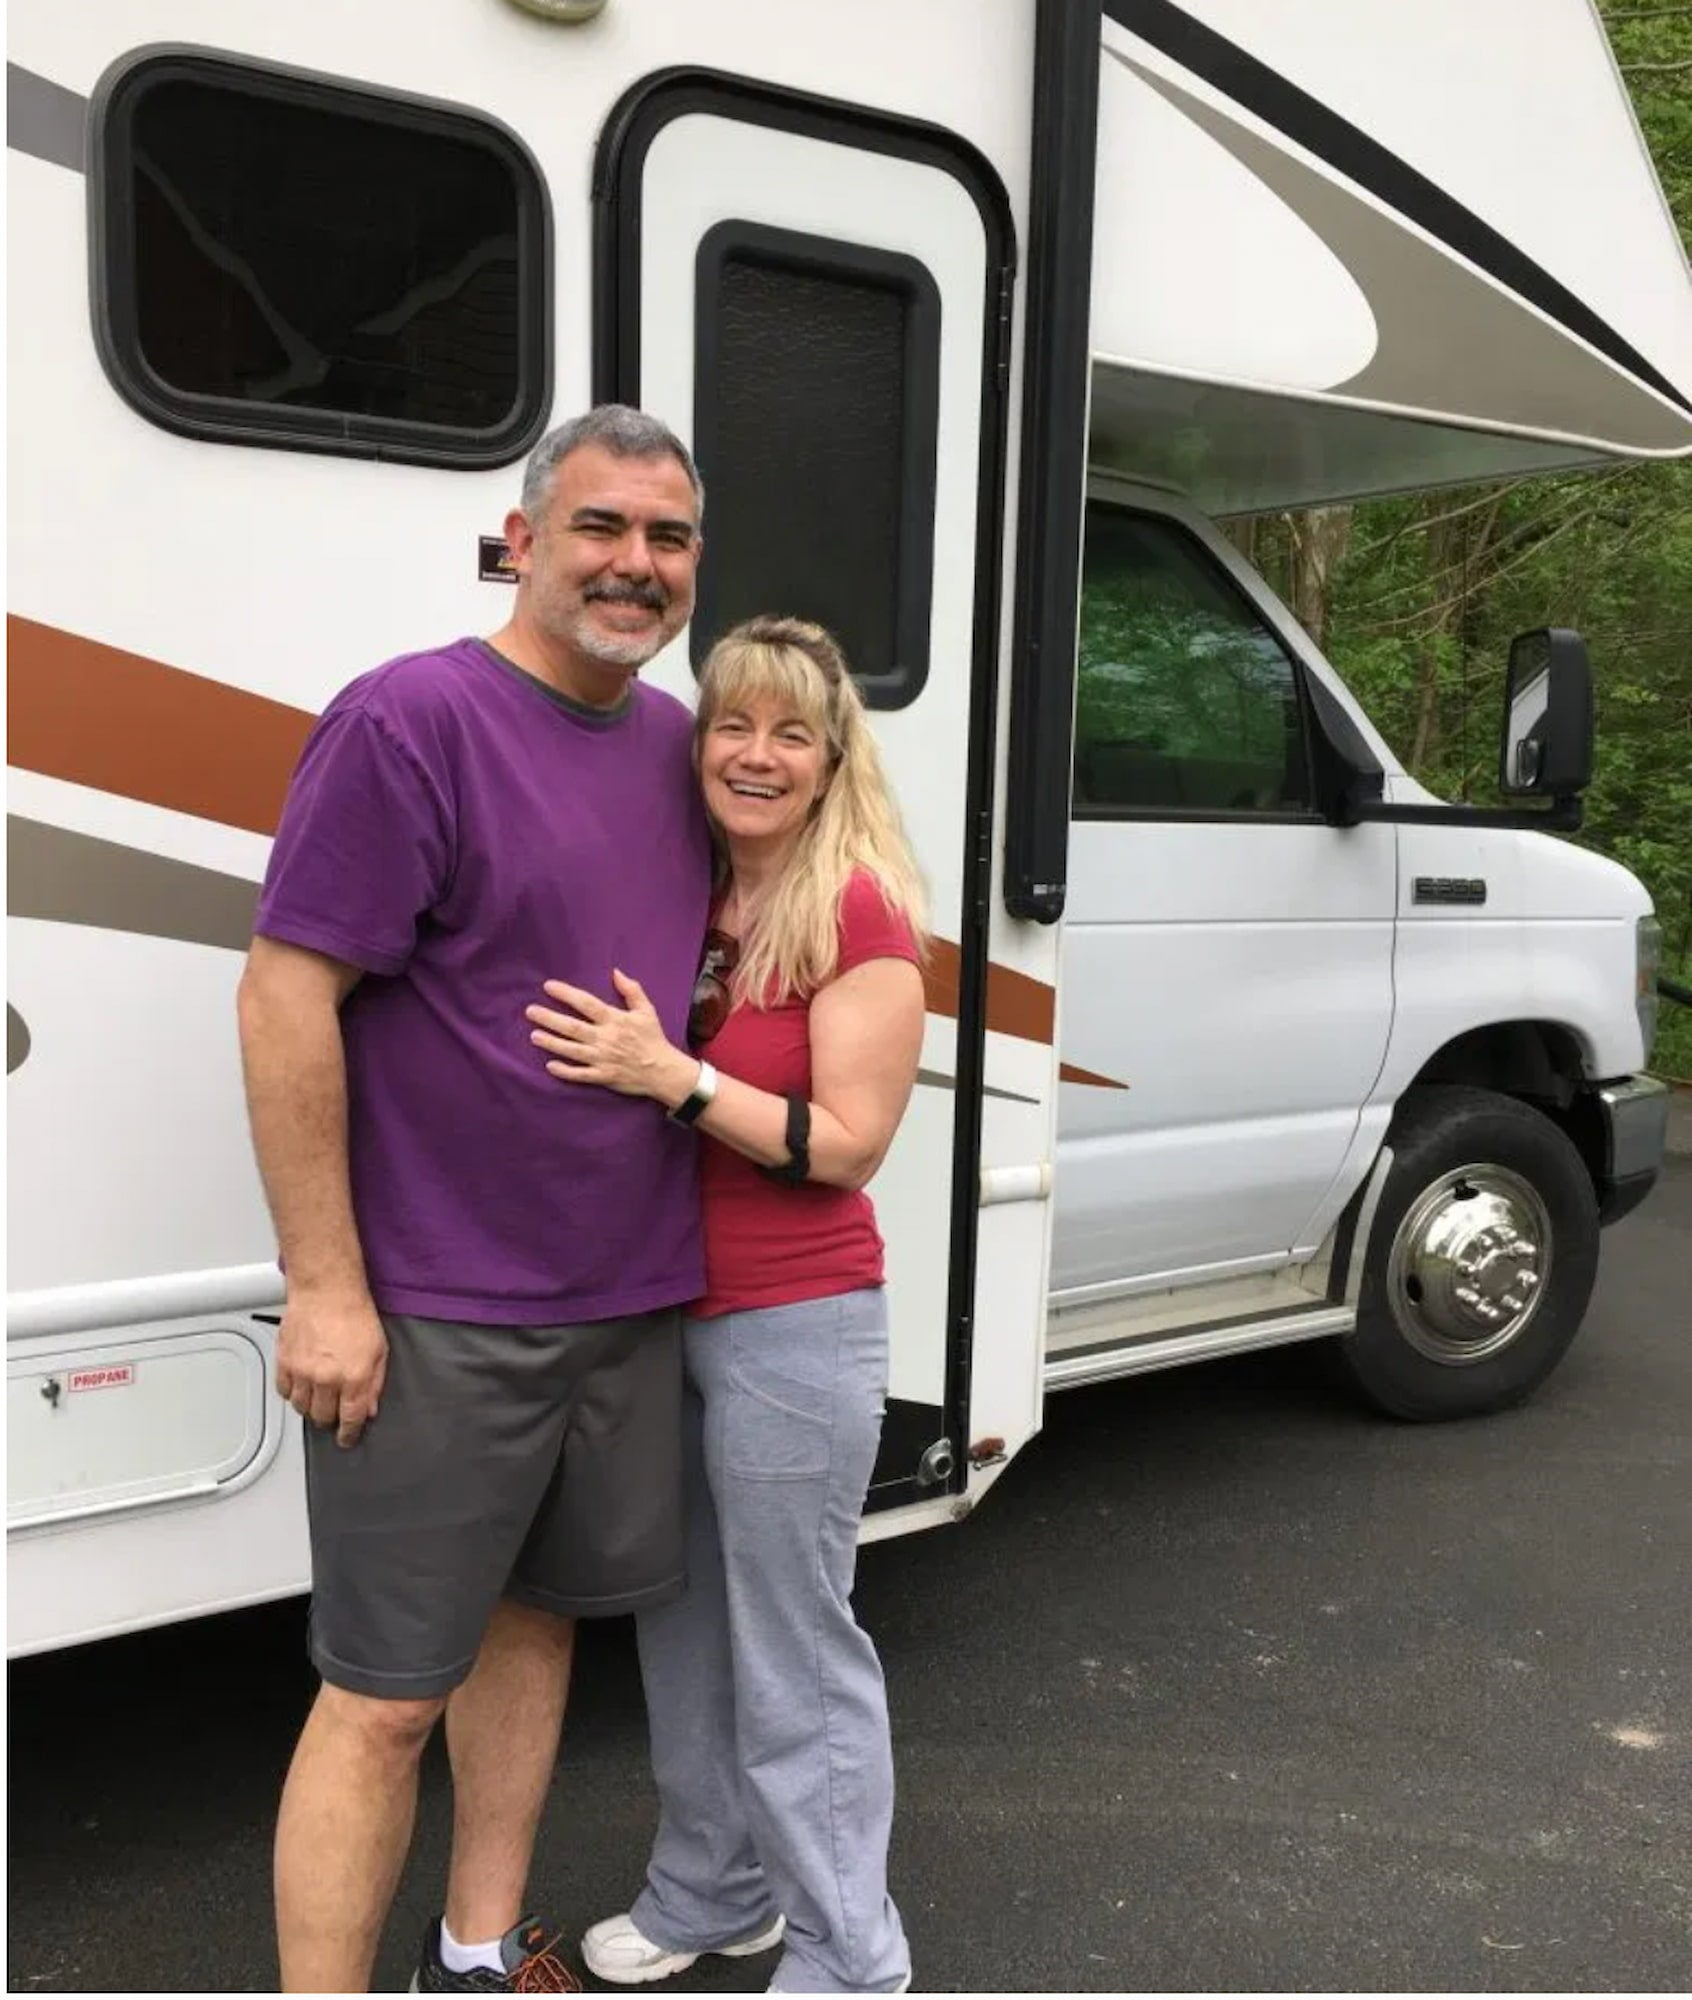 Mike and Susan with their Class C RV.